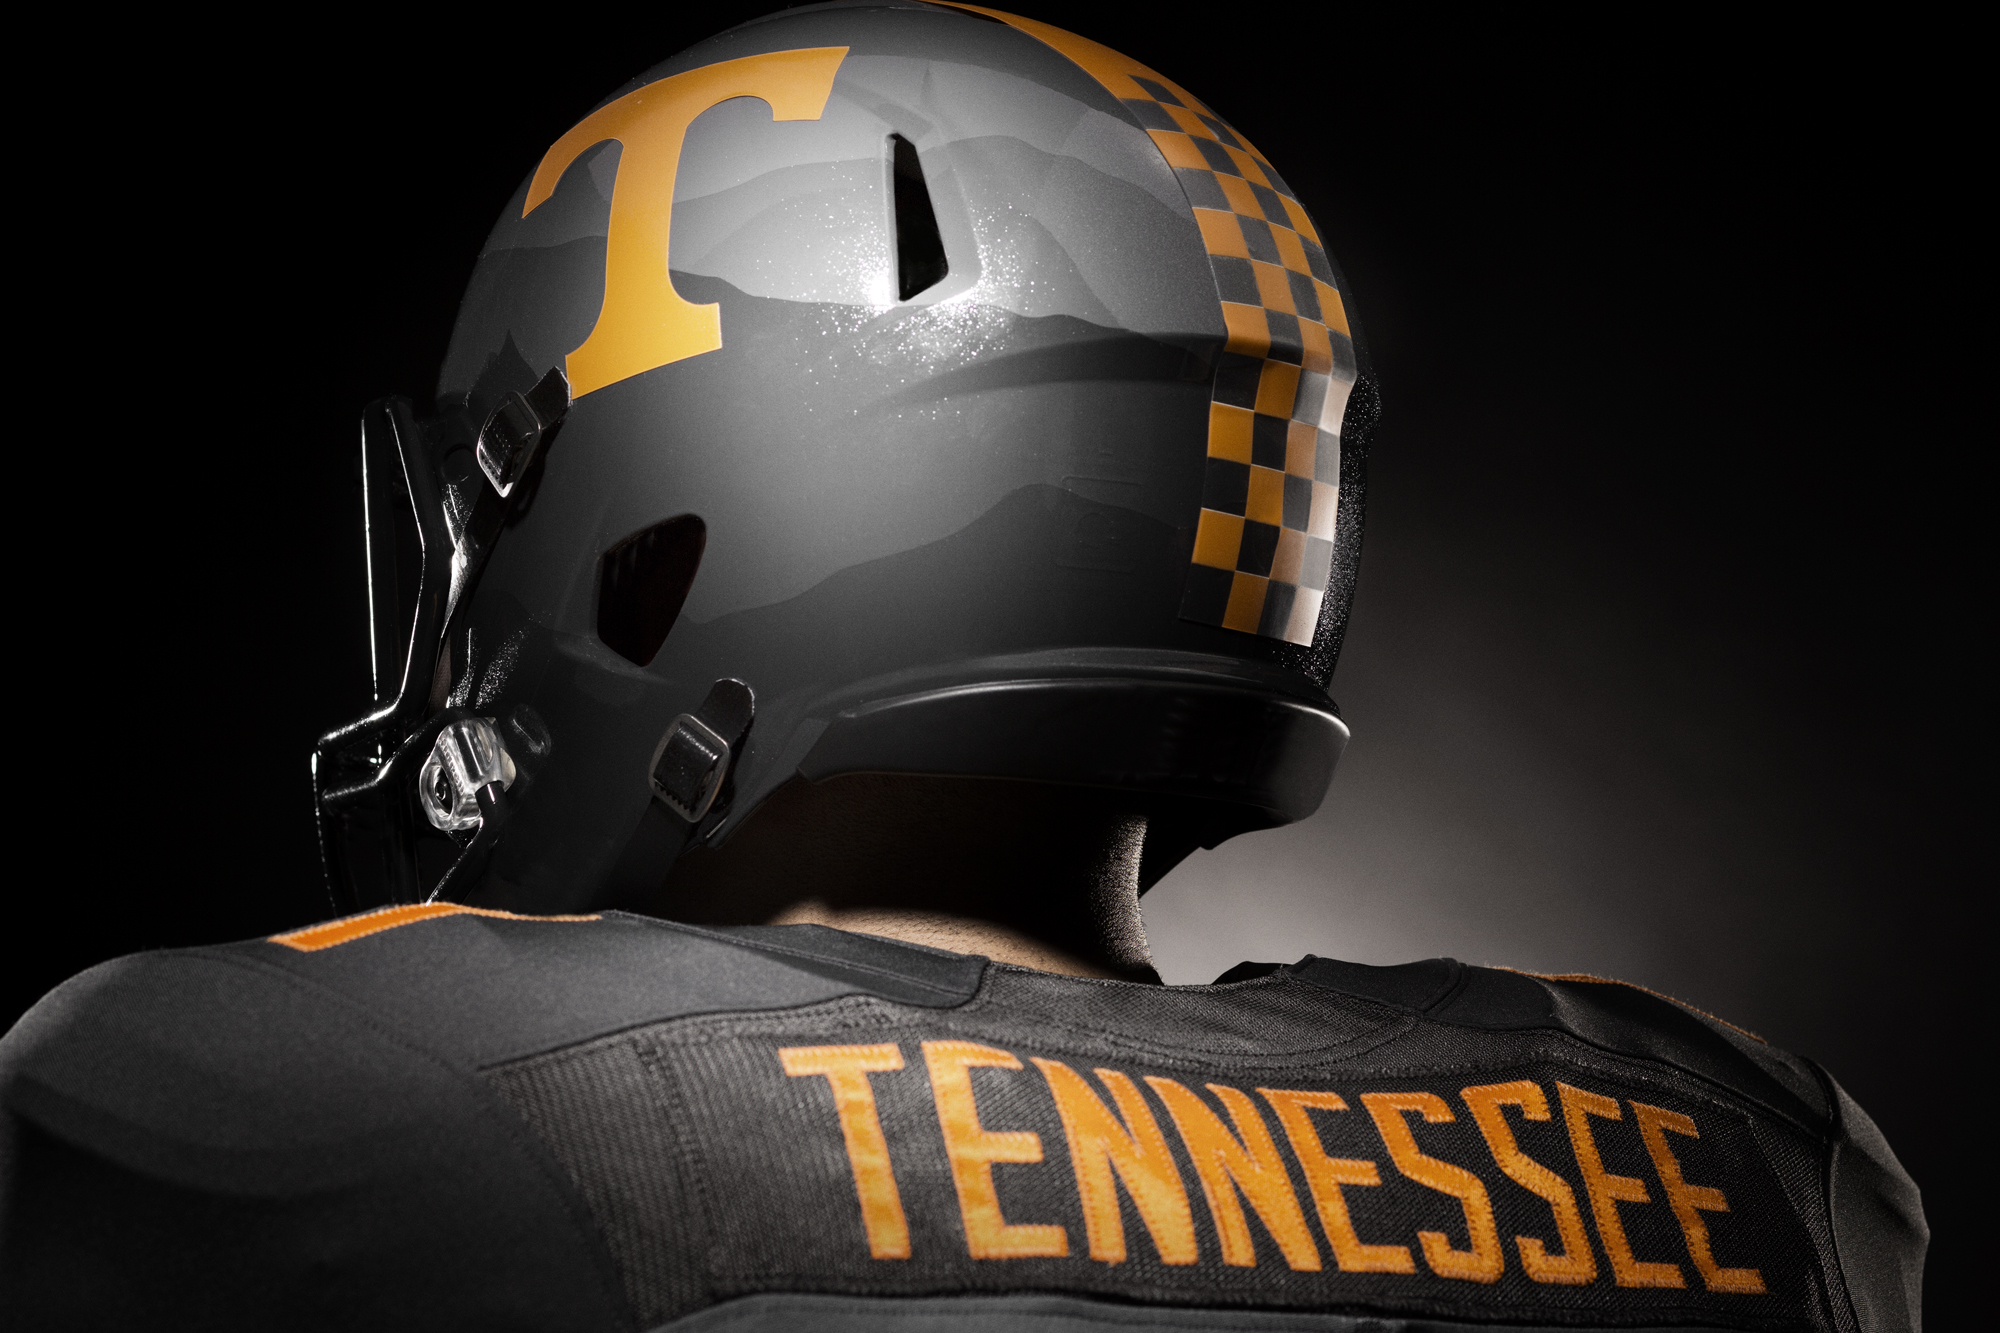 tennessee volunteers football wallpaper - photo #36